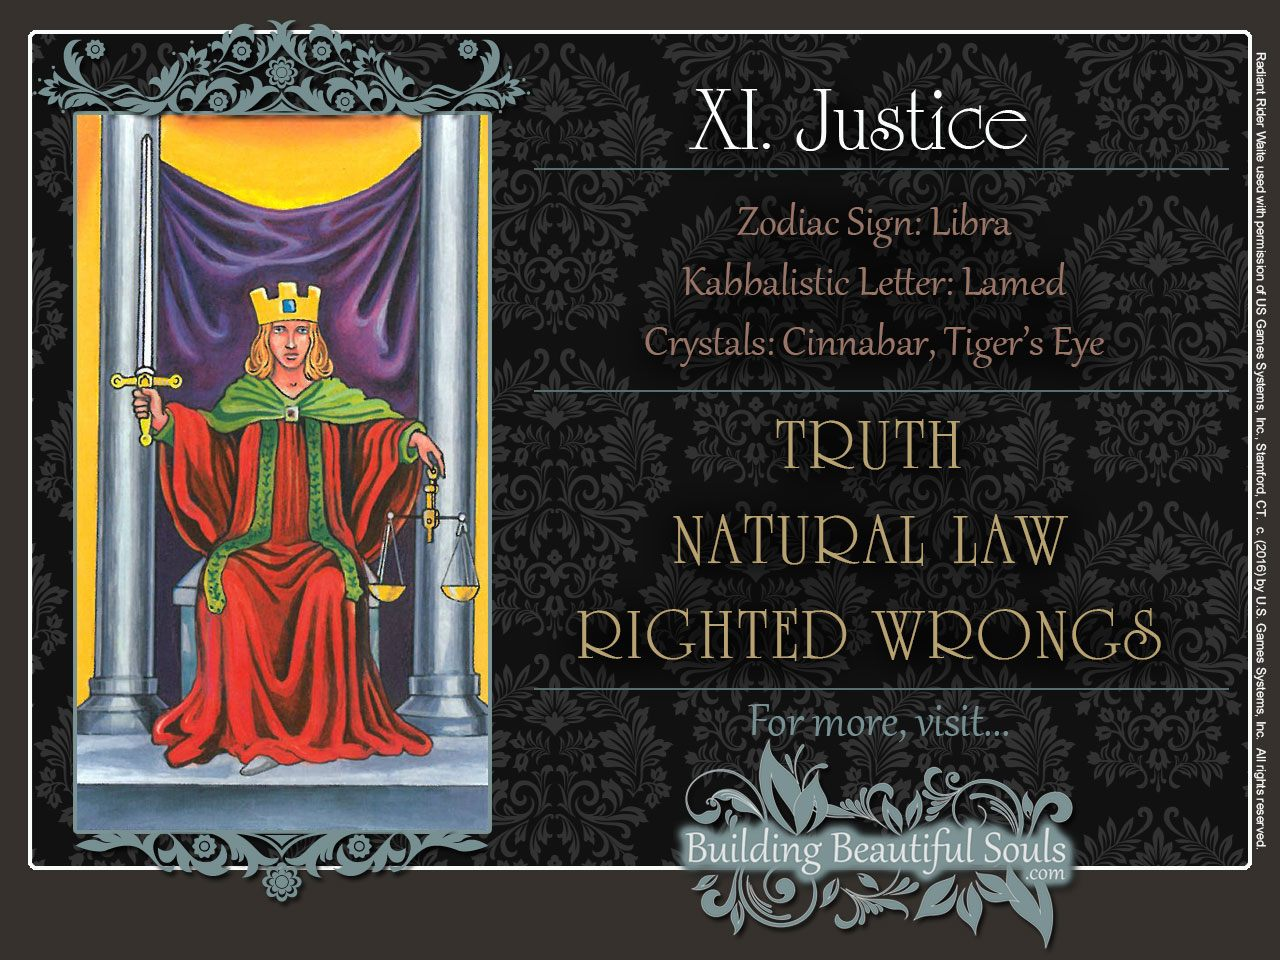 Upright Justice Card Meaning